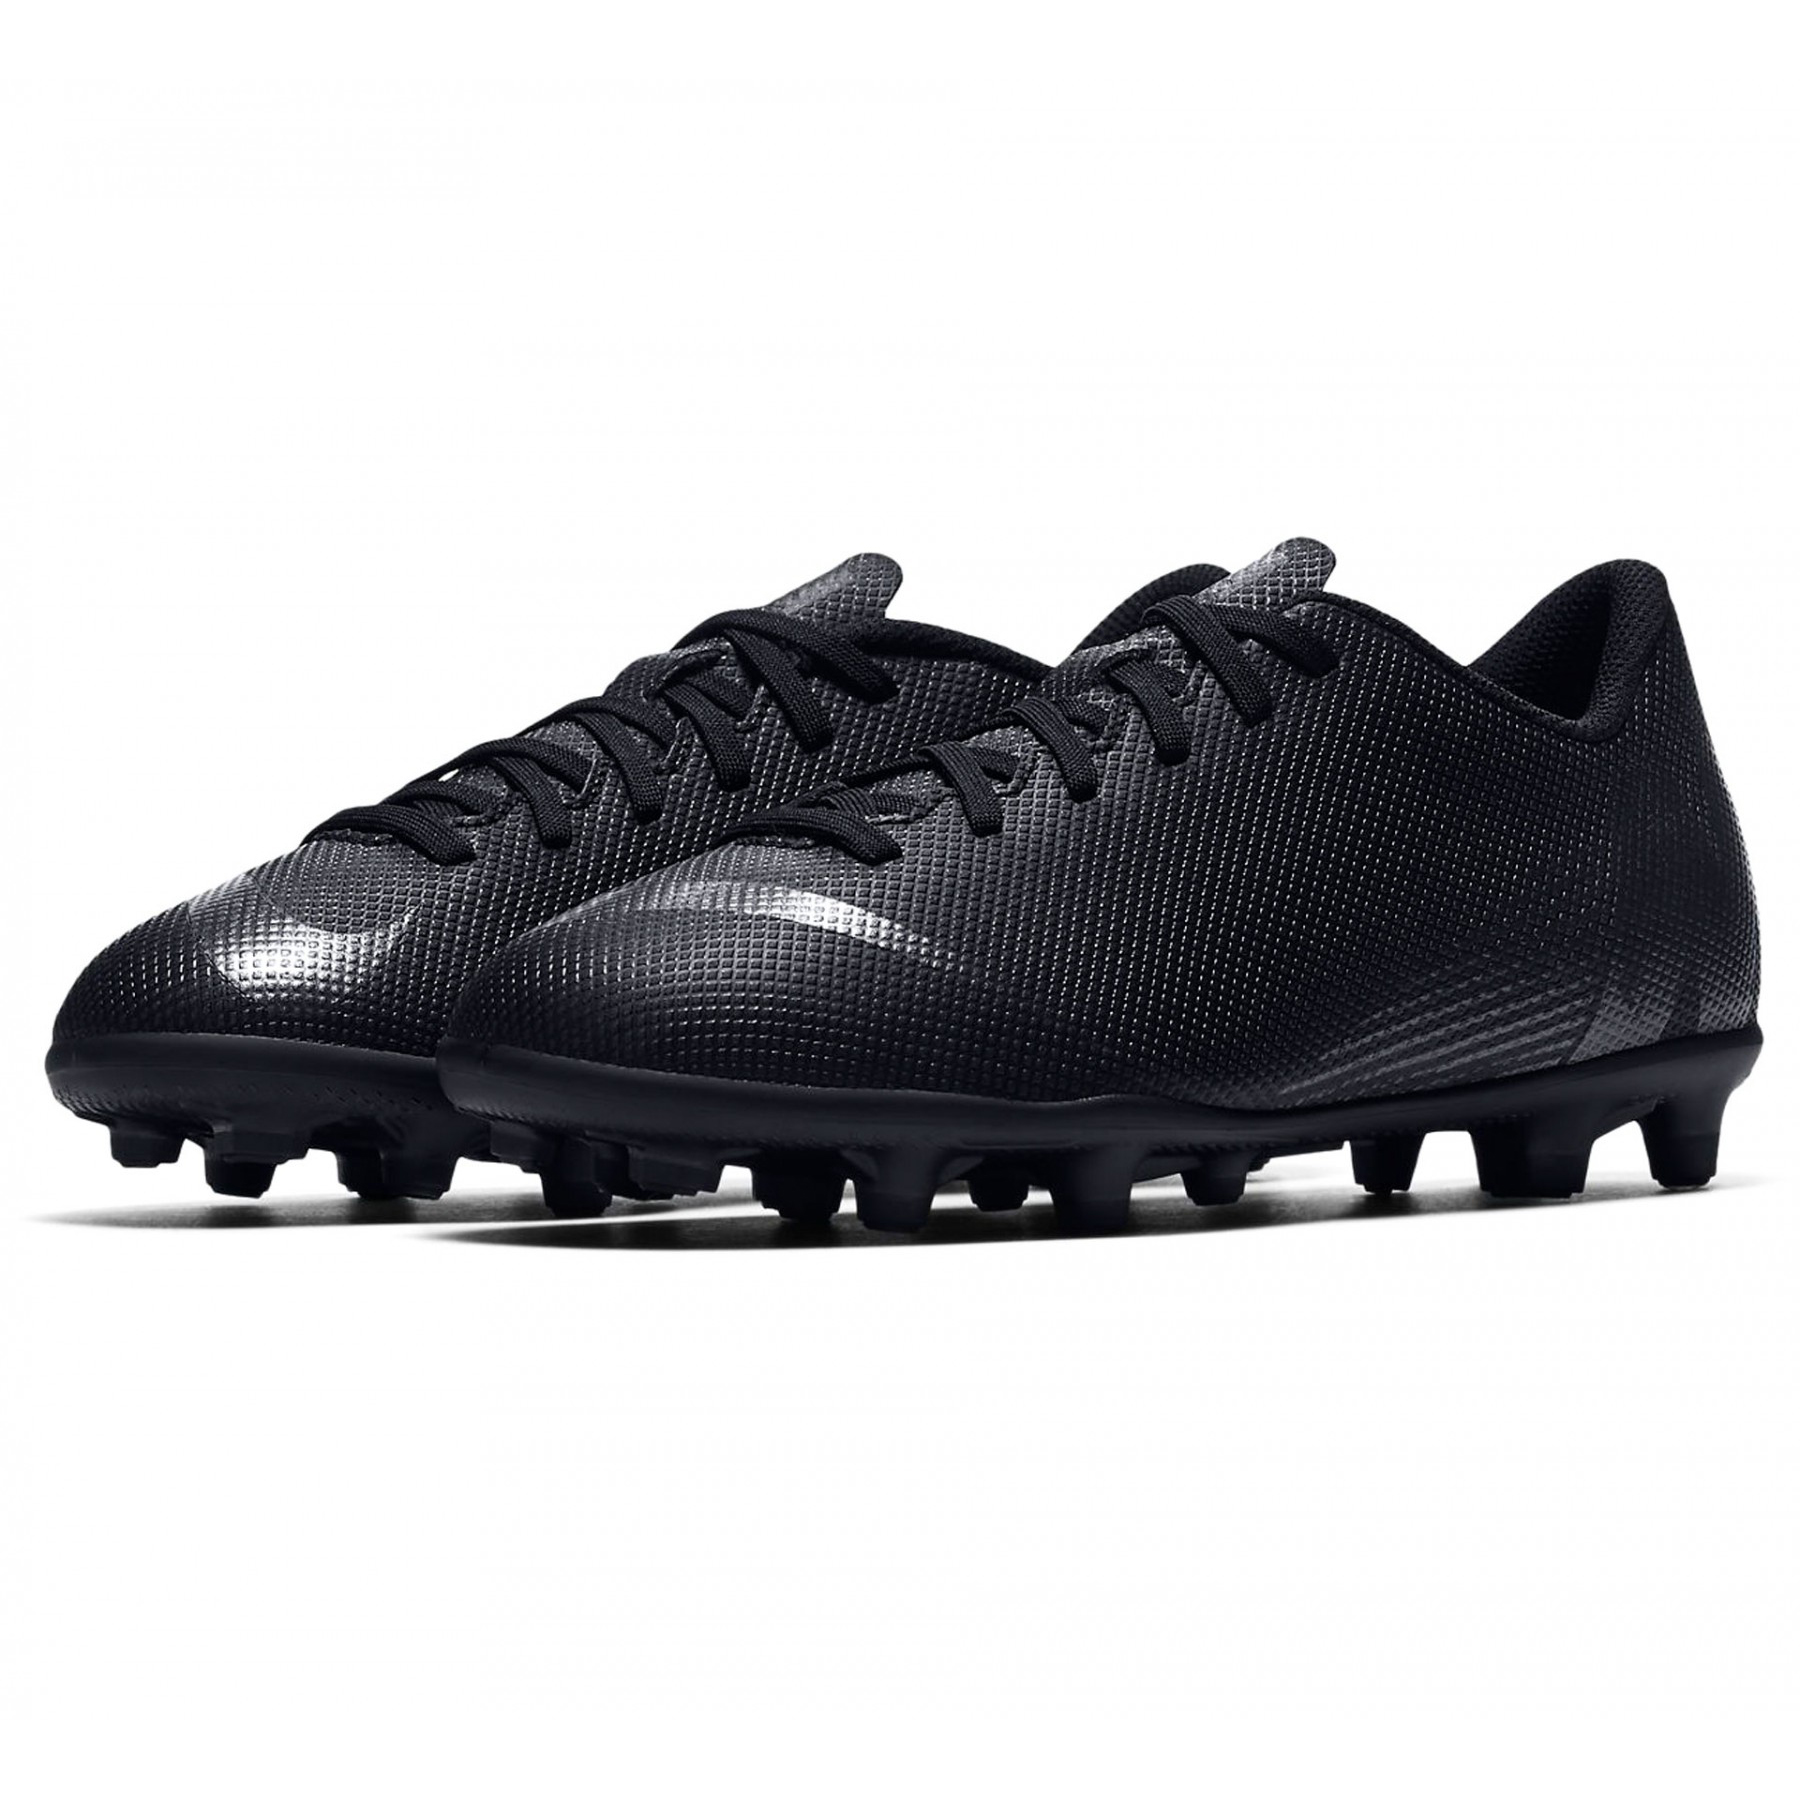 NIKE VAPOR 12 CLUB GS FG/MG AH7350-001 JR